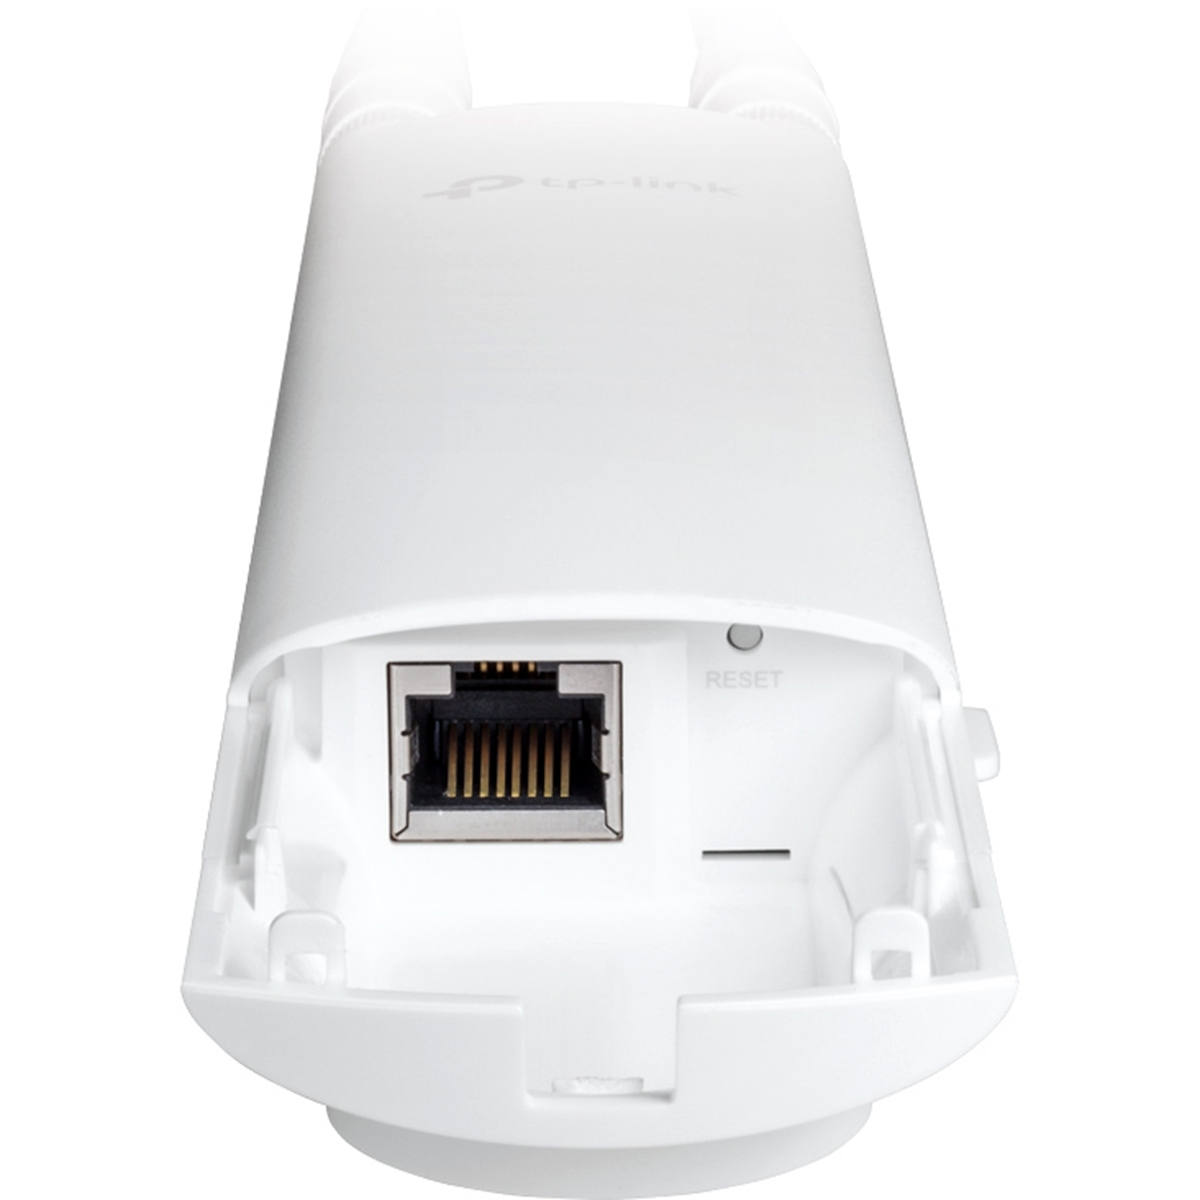 ACCESS POINT EXTERNO GIGABIT MU-MIMO WIRELESS AC1200 2.4GBZ E 5GHZ EAP225-OUTDOOR SMB